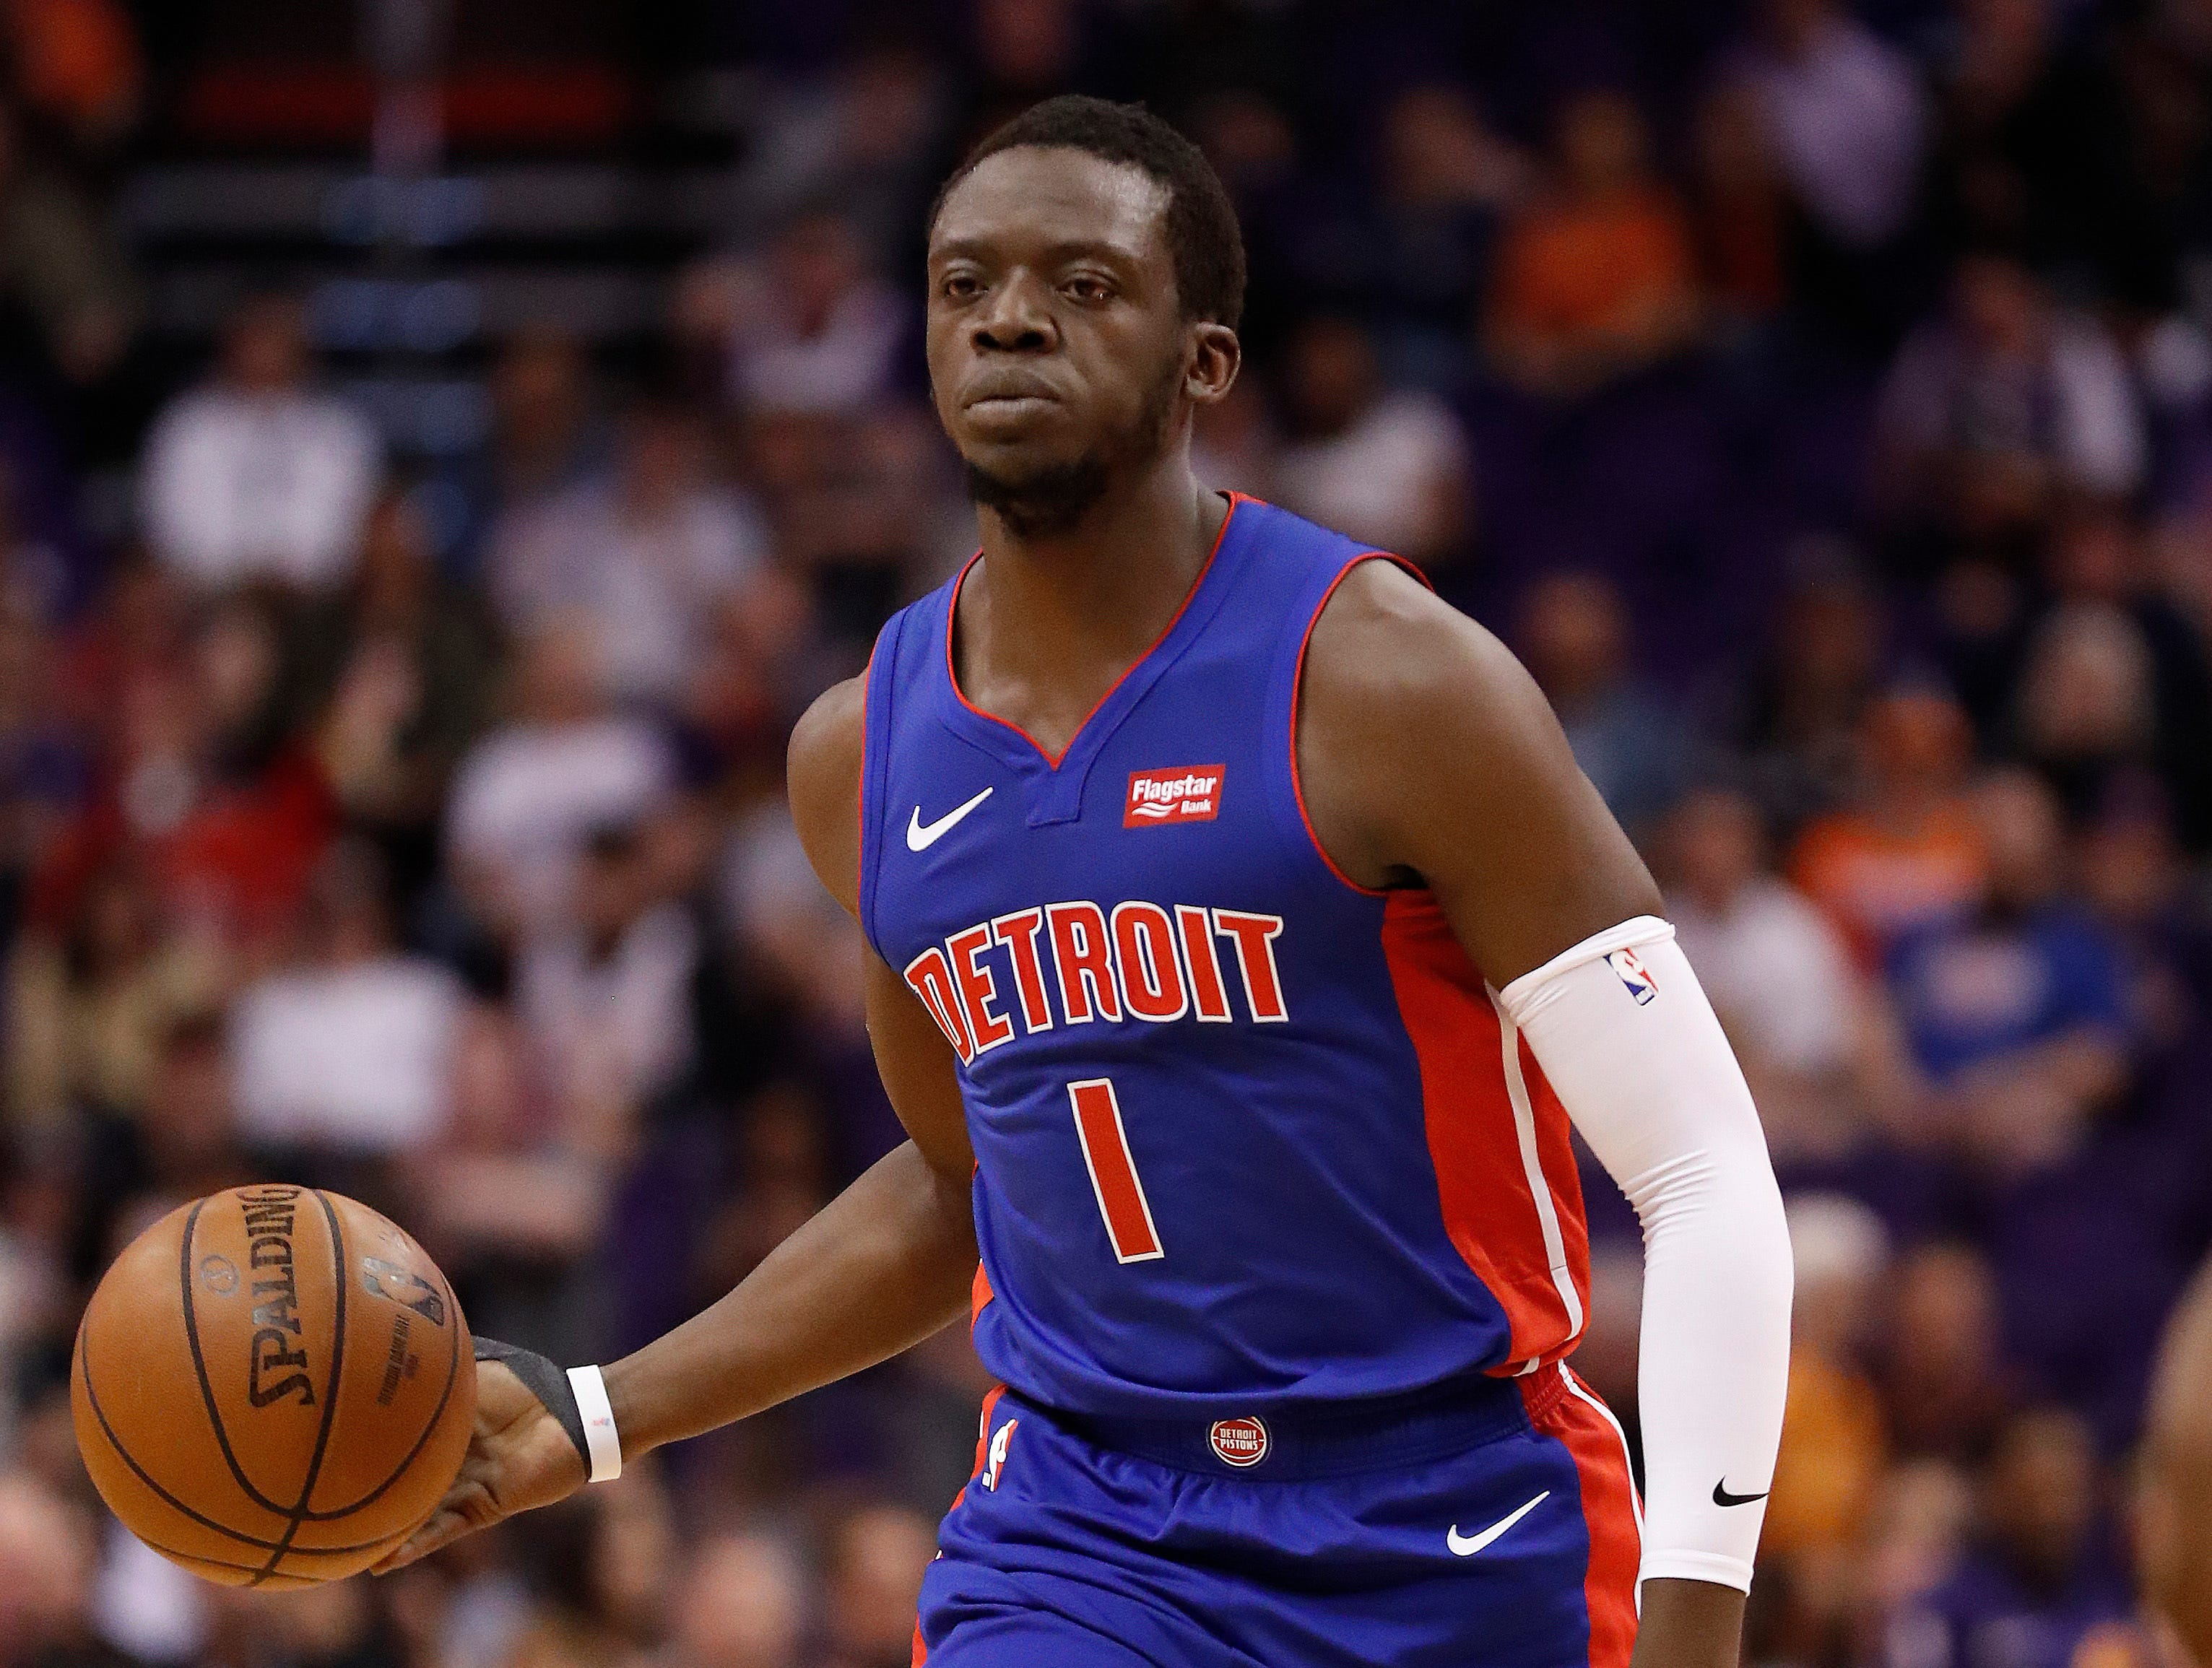 Detroit Pistons guard Reggie Jackson (1) against the Phoenix Suns during the first half.